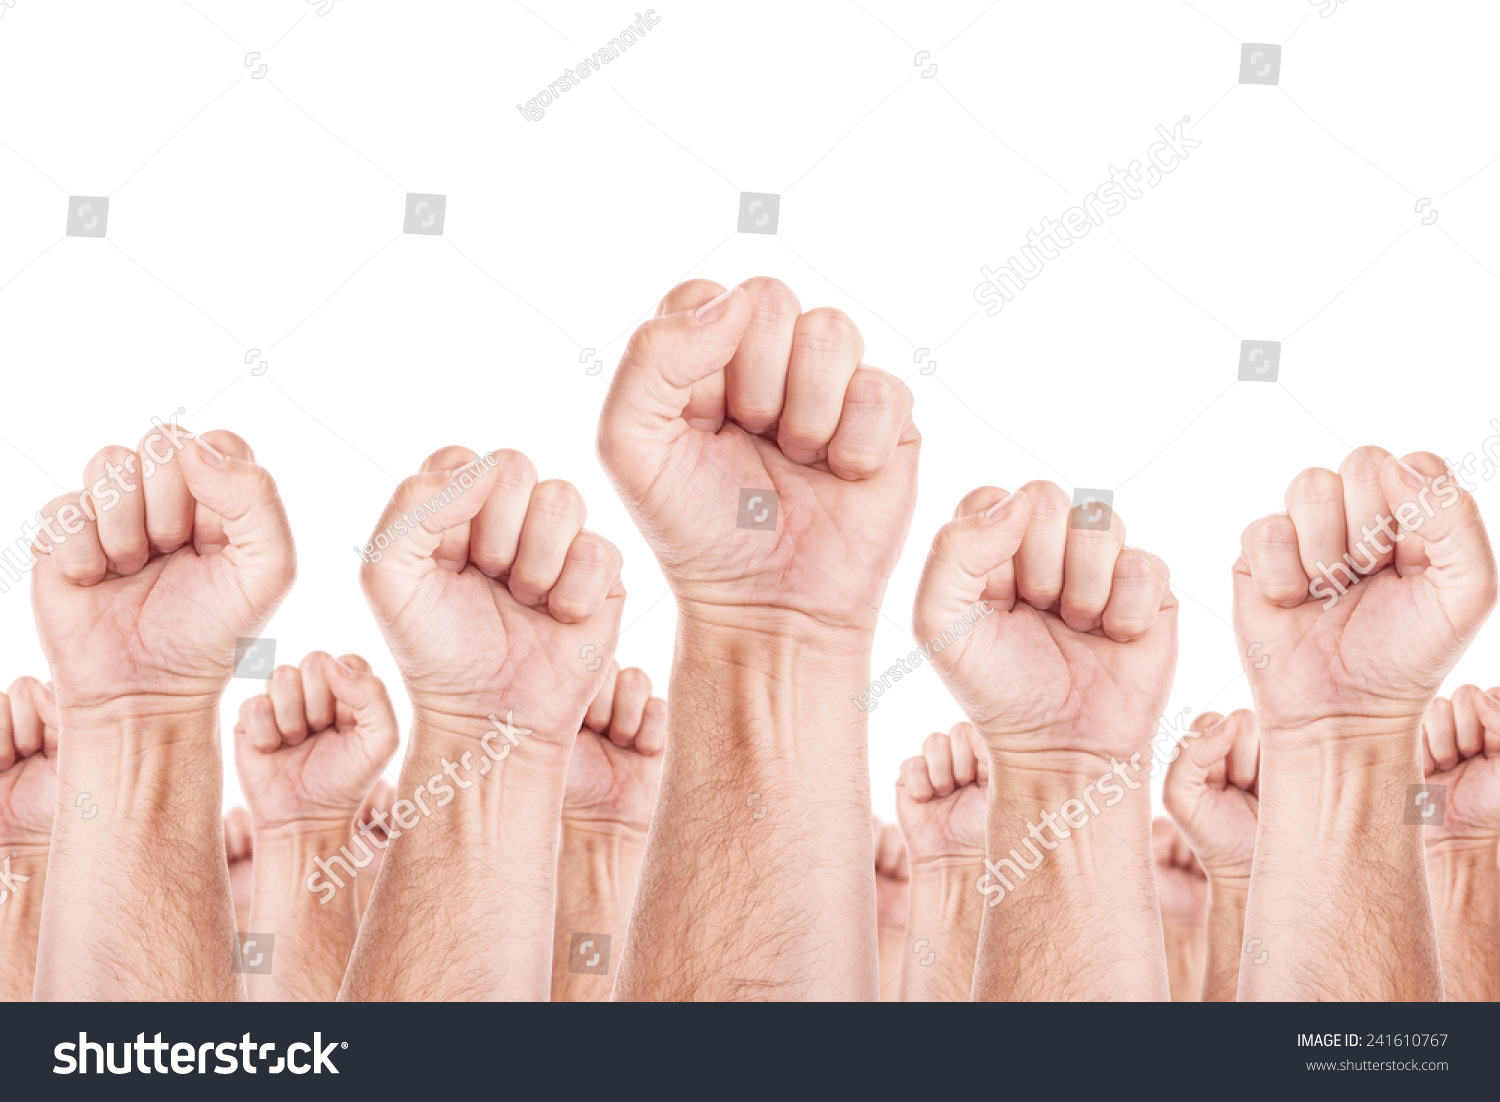 Workers unite fist